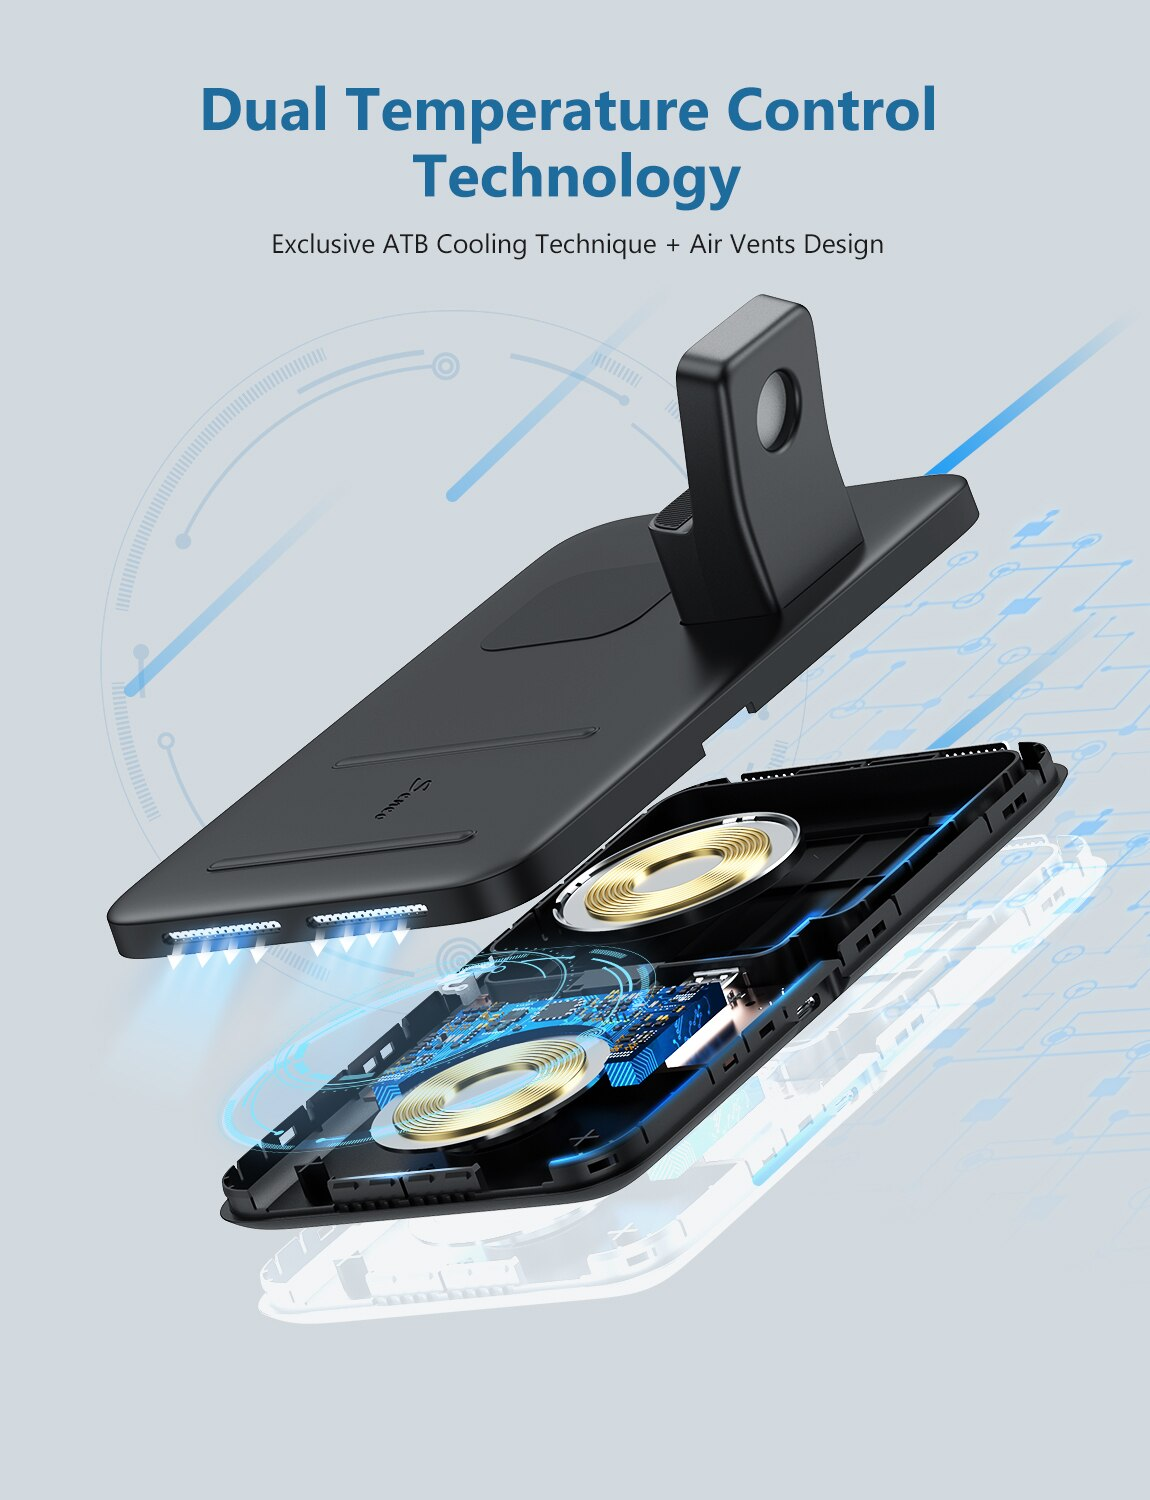 Ha47a1bde1fcc44f982fe4a005bdfa1c56 - Seneo PA202 Wireless Charger 3 in 1 for iPhone 12 11 Wireless Charging Pad for AirPods Pro 2 Charging Dock for iWatch 5 4 3 2